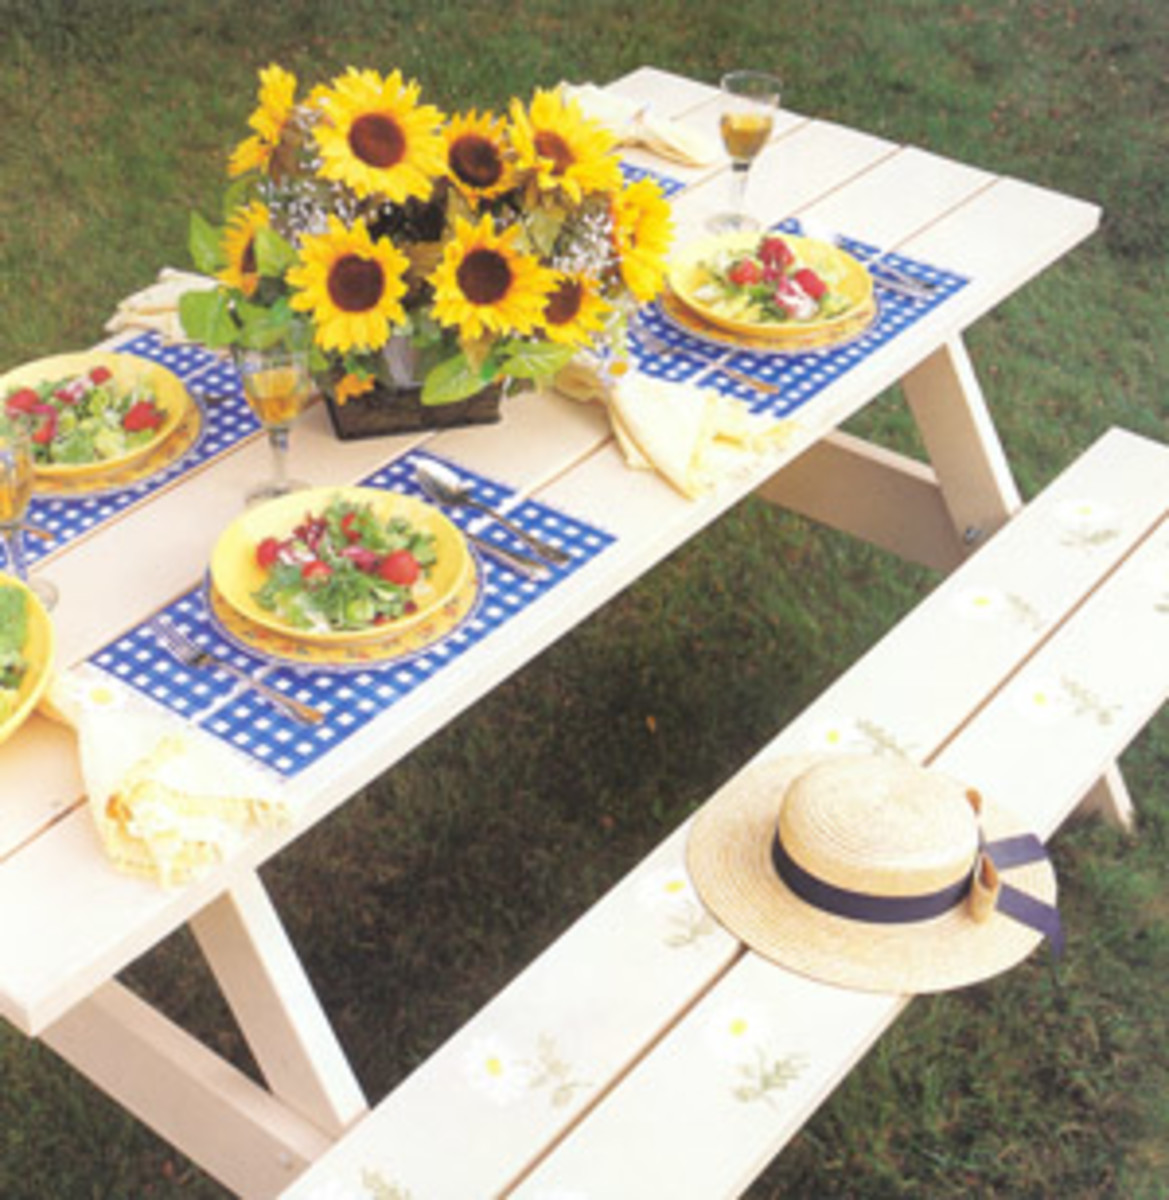 Picnics are perfect for hardboiled eggs and recipes related to them!